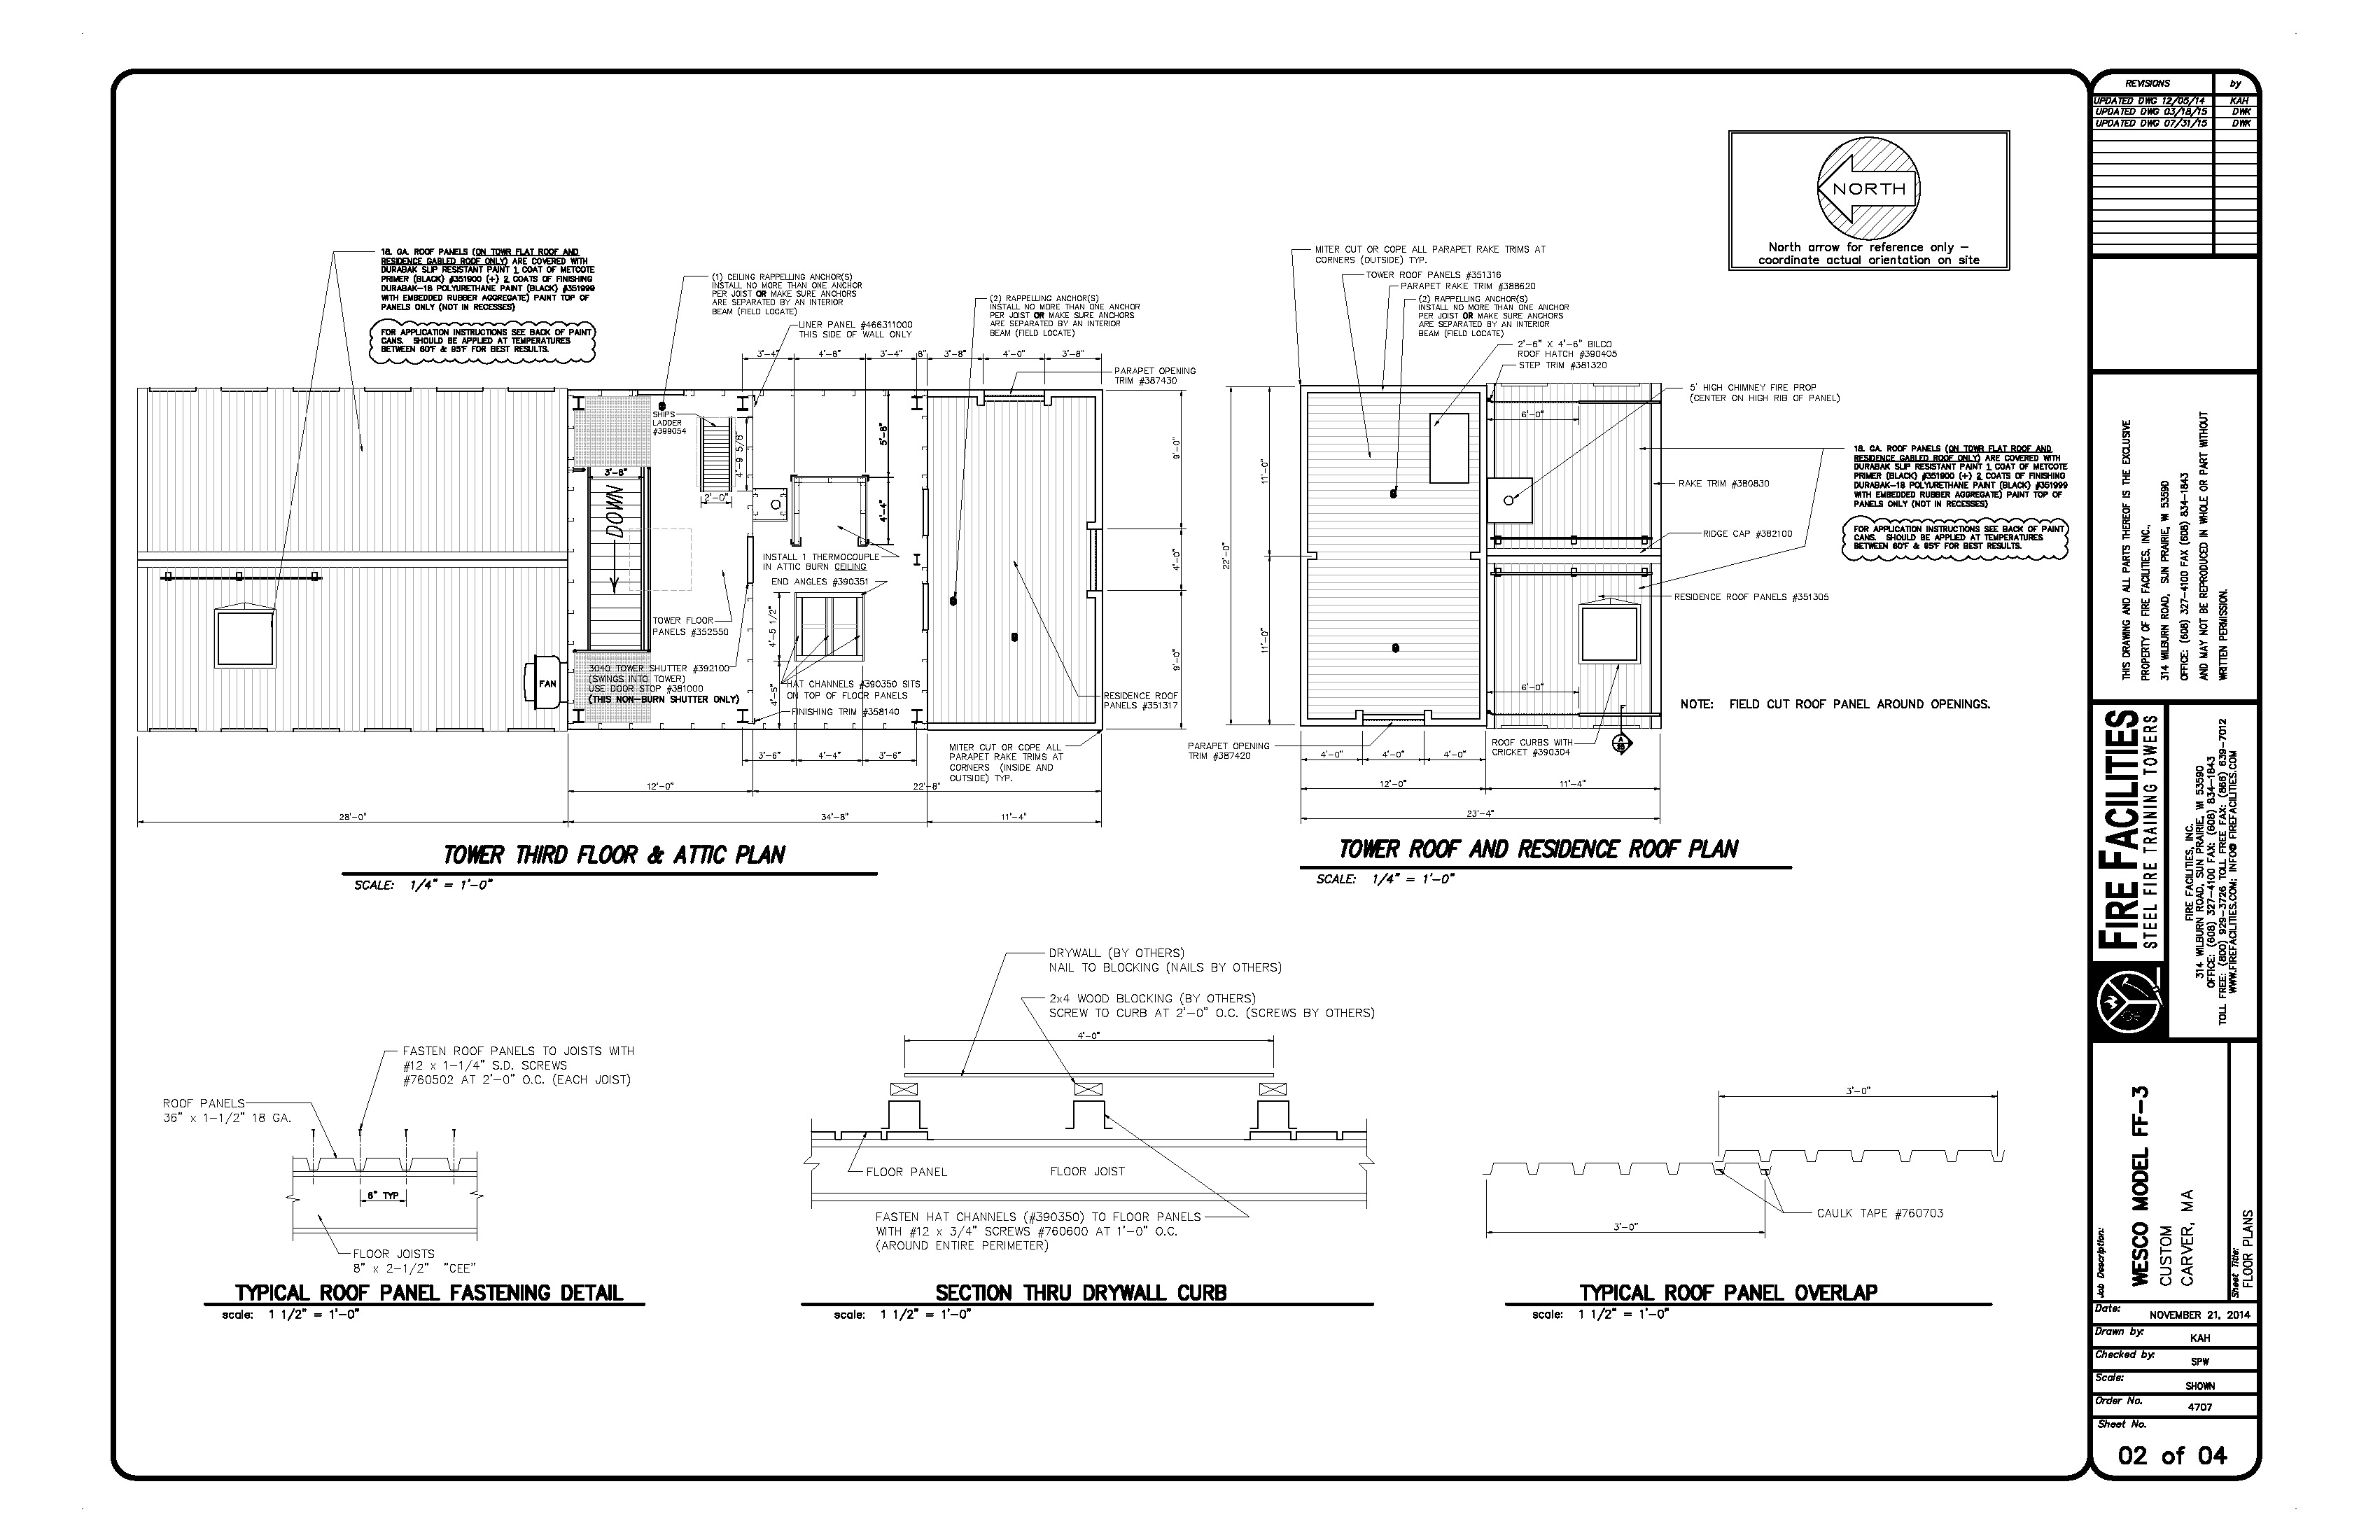 Trainng Facility Drawing 4707D_07-31-15 ATTACHMENT B_Page_2